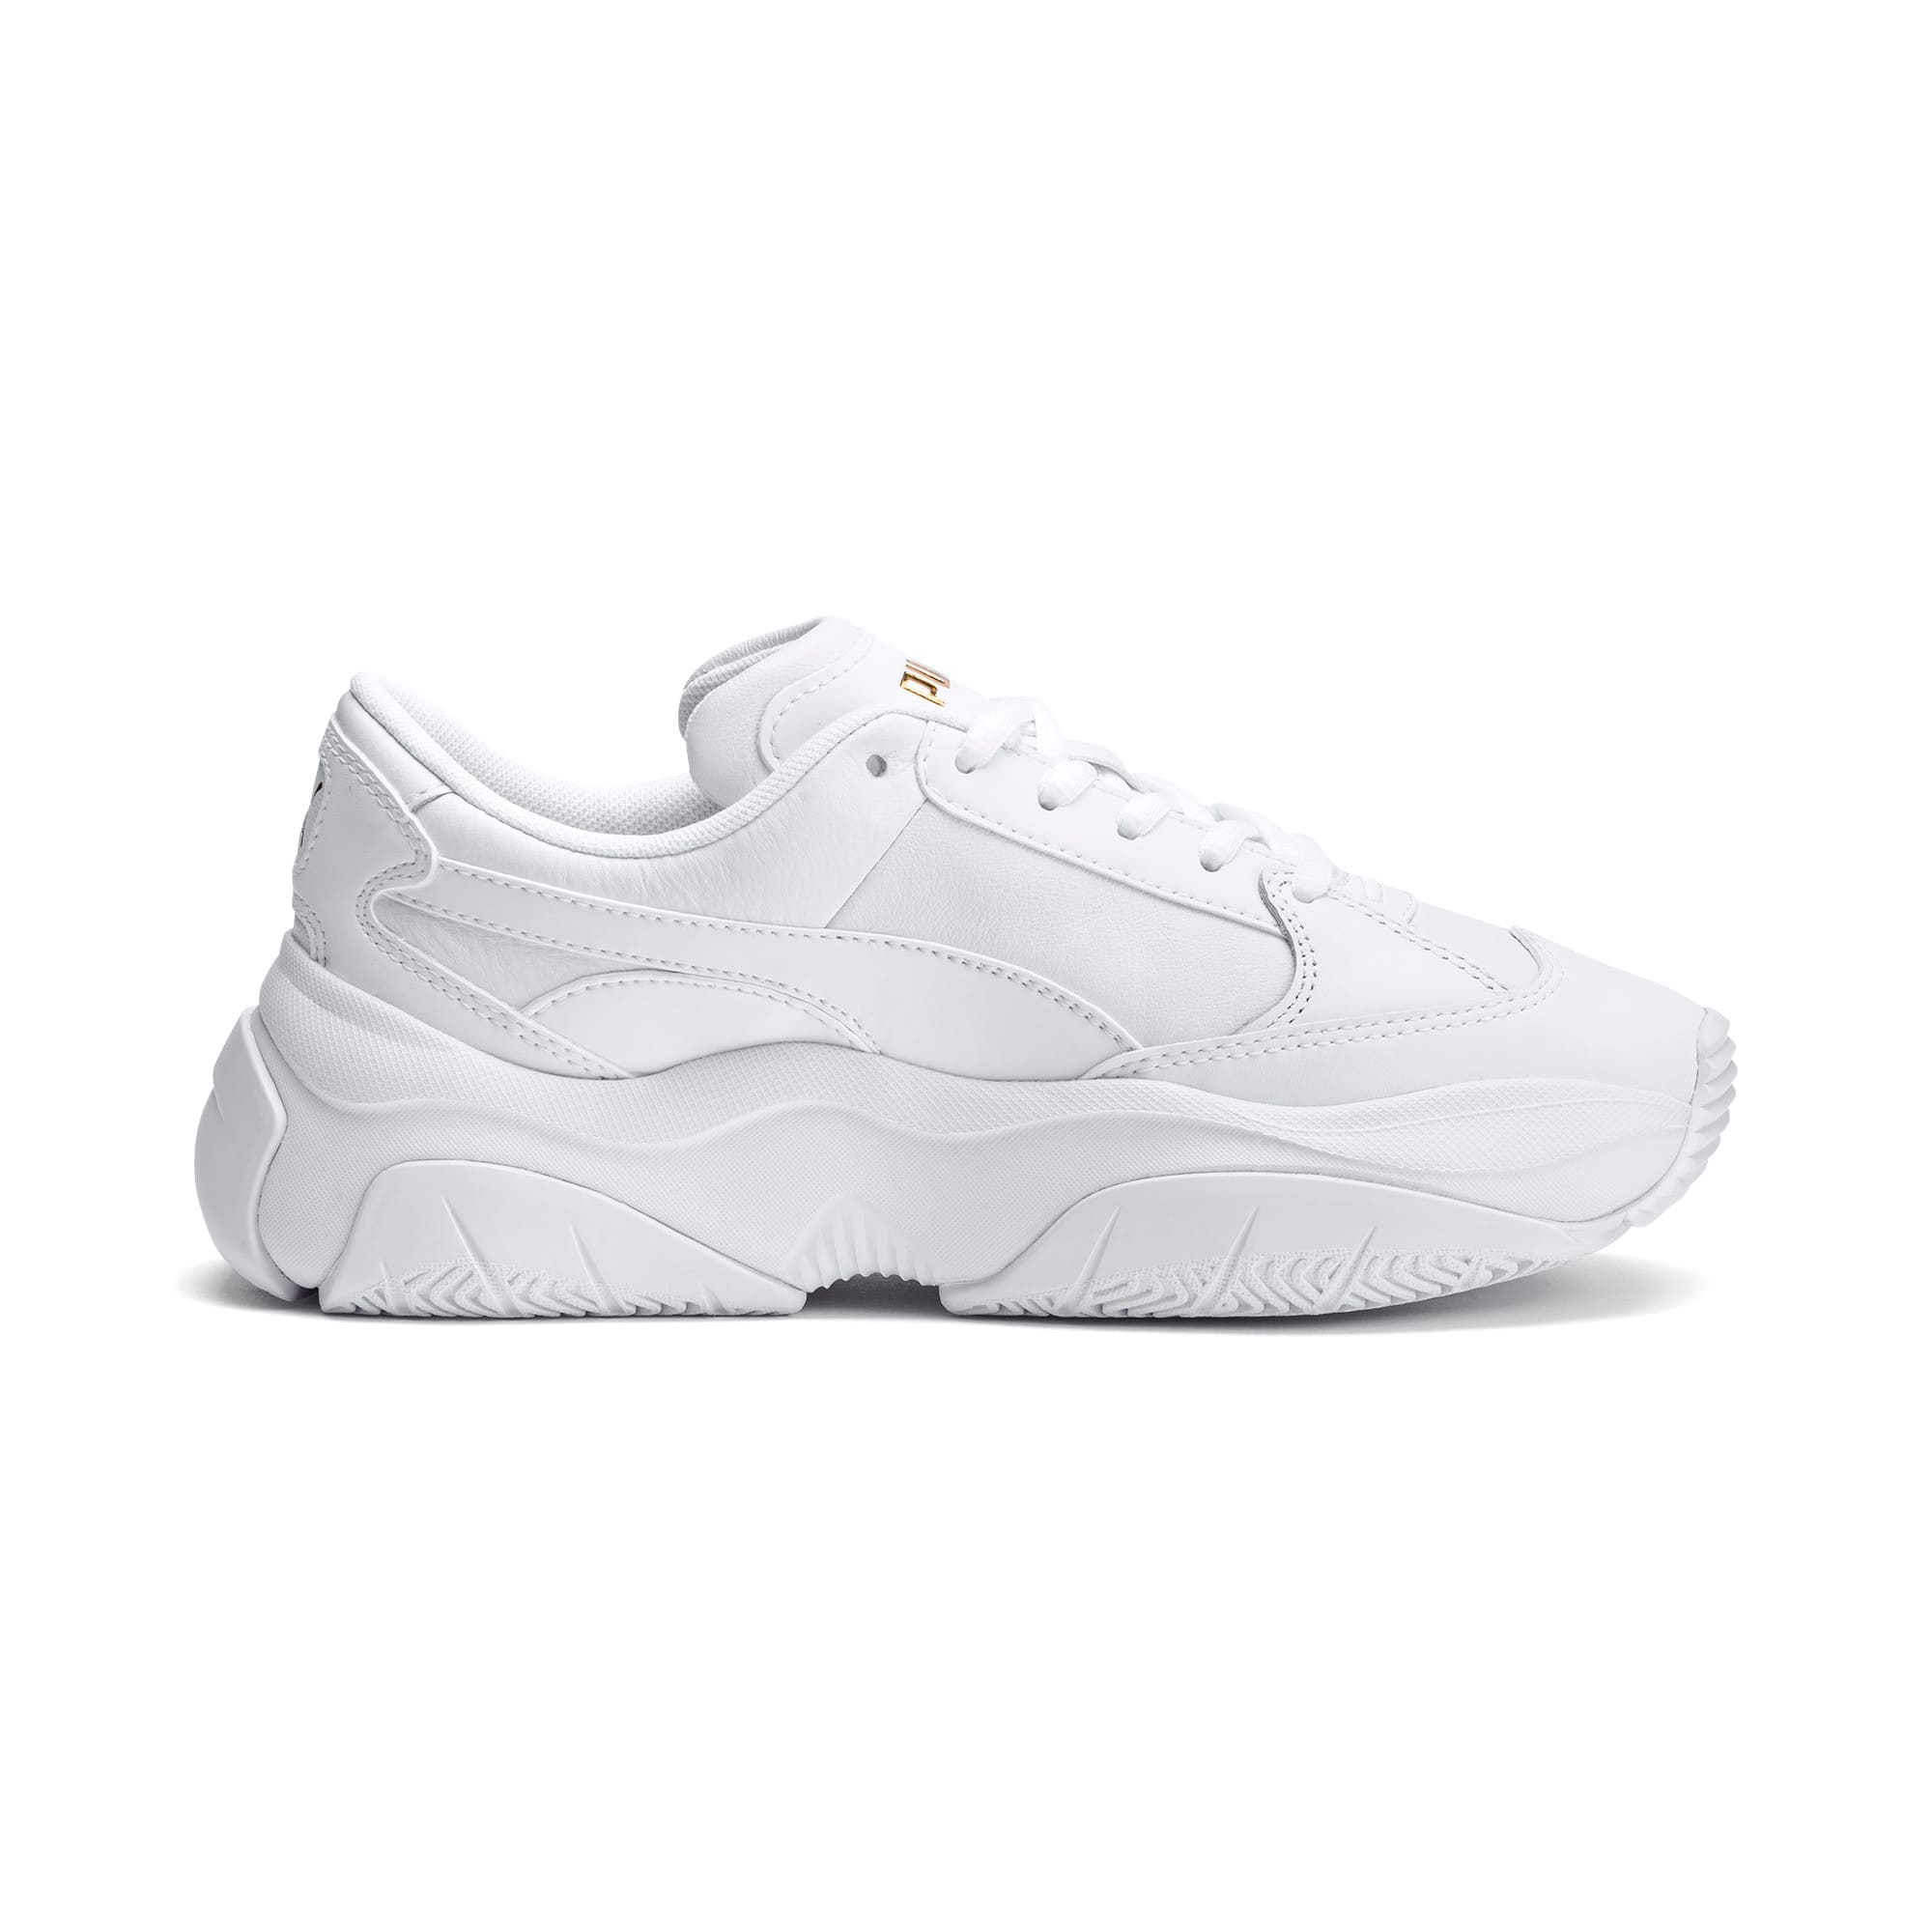 Thumbnail 5 of STORM.Y Leather Women's Trainers, Puma White, medium